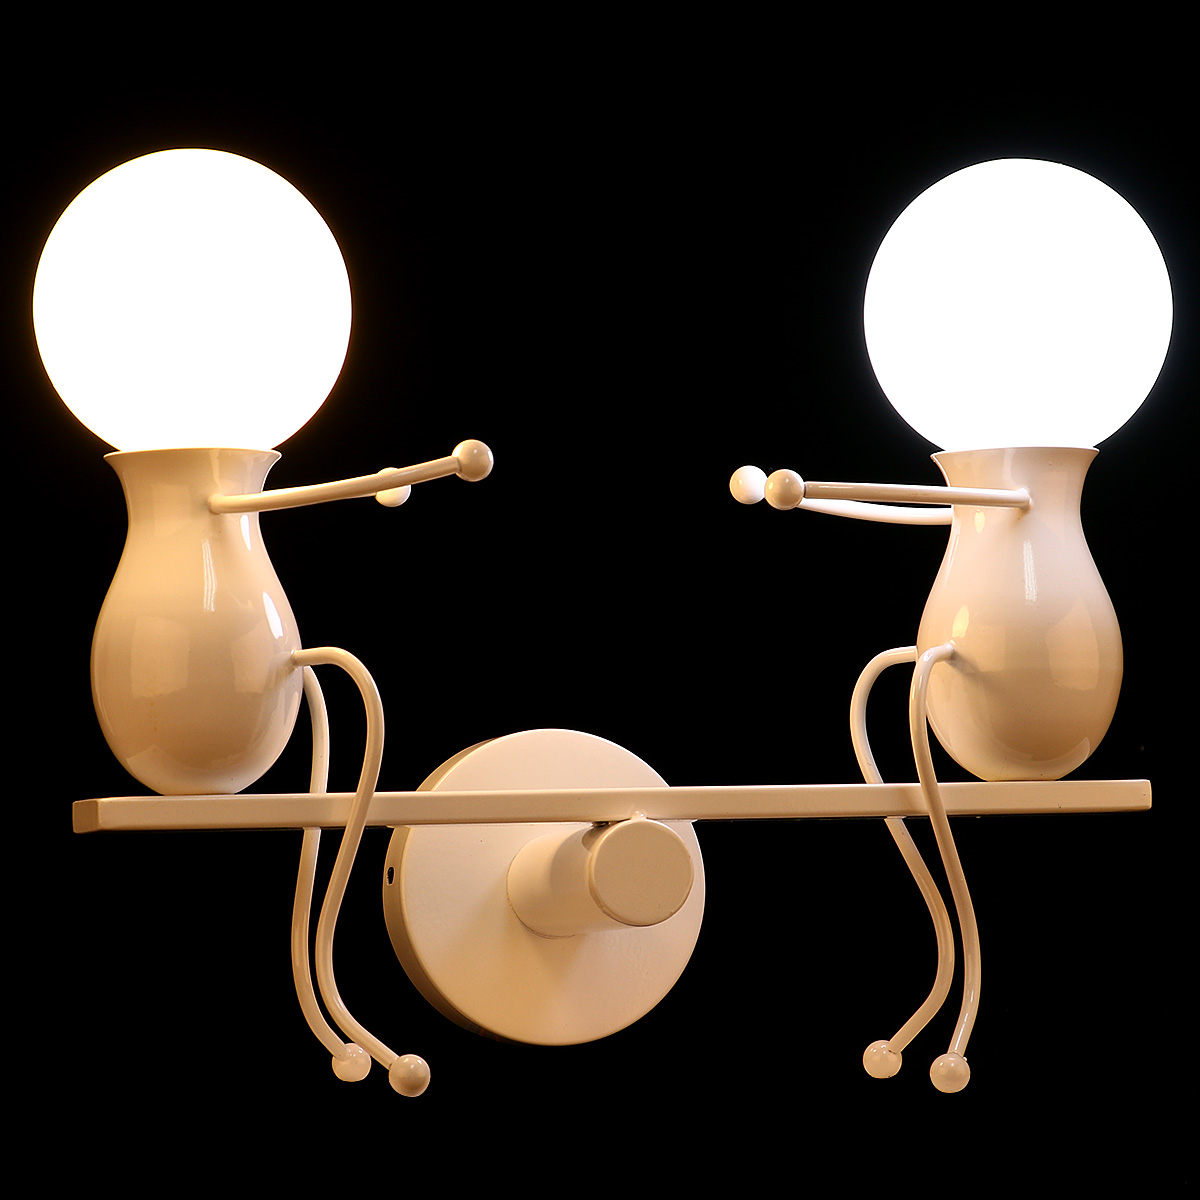 KAWELL Humanoid Creative Wall Light Modern Wall Lamp Simple Wall Sconce Art Deco Max 60W E27 Base Iron Holder for Children Room, Bedroom Bedside, Stairs, Hallway, Restaurant, Kitchen, White